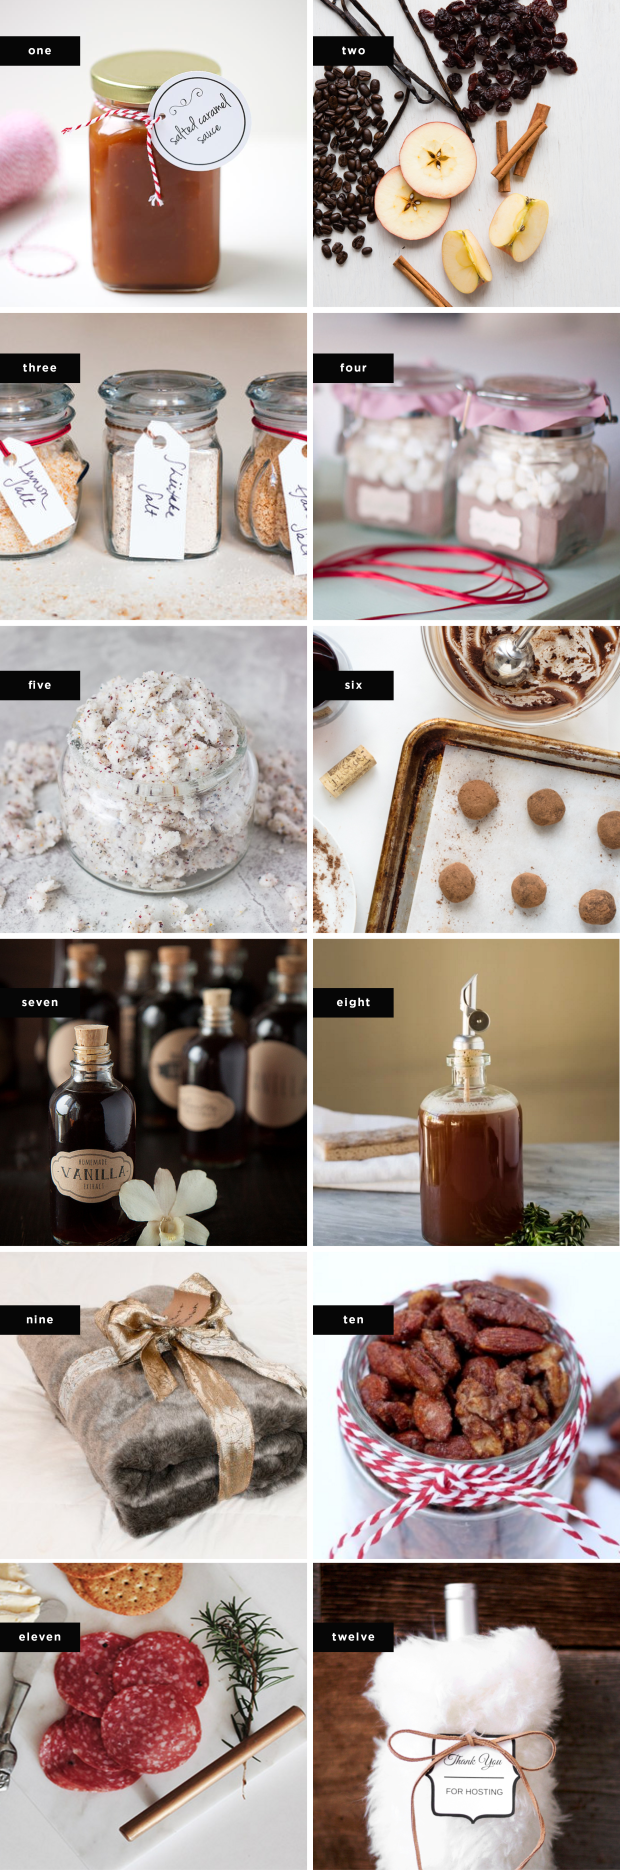 Easy Homemade Gifts That Are Guaranteed to Be a Hit at Holiday Parties - Verily